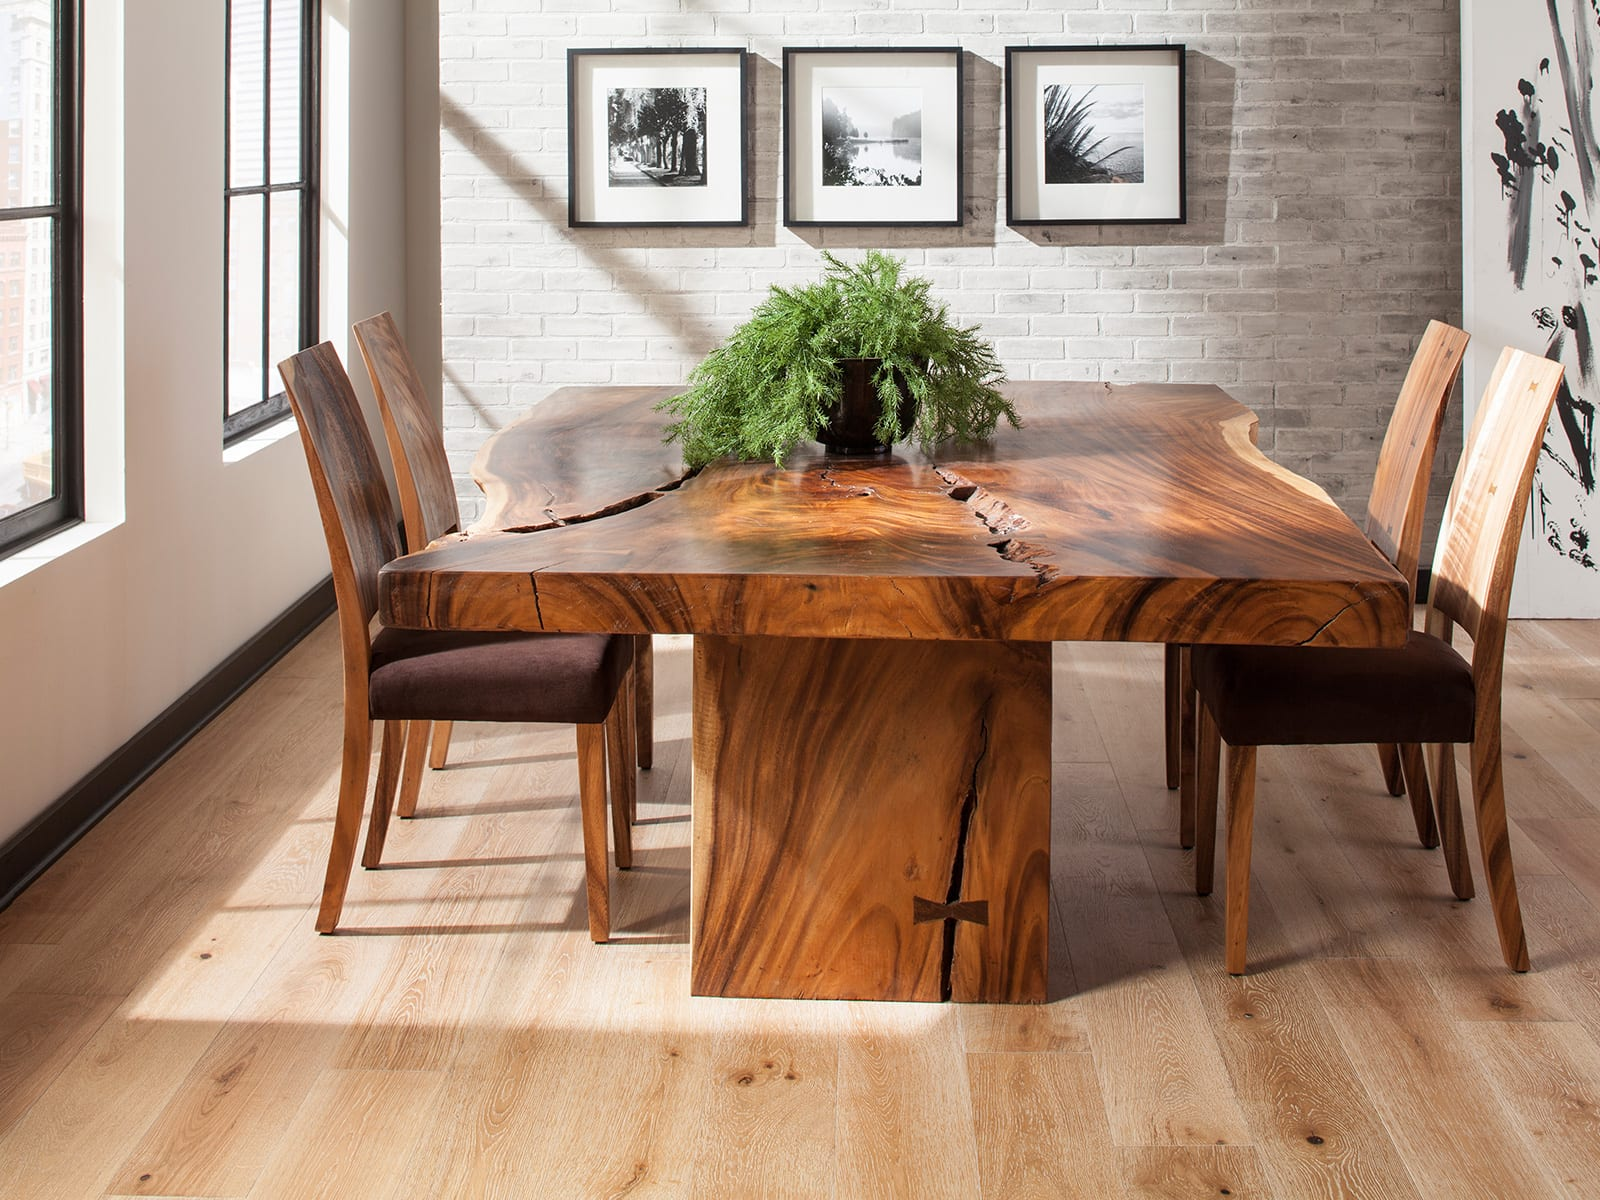 Origins Dining Table & Chairs